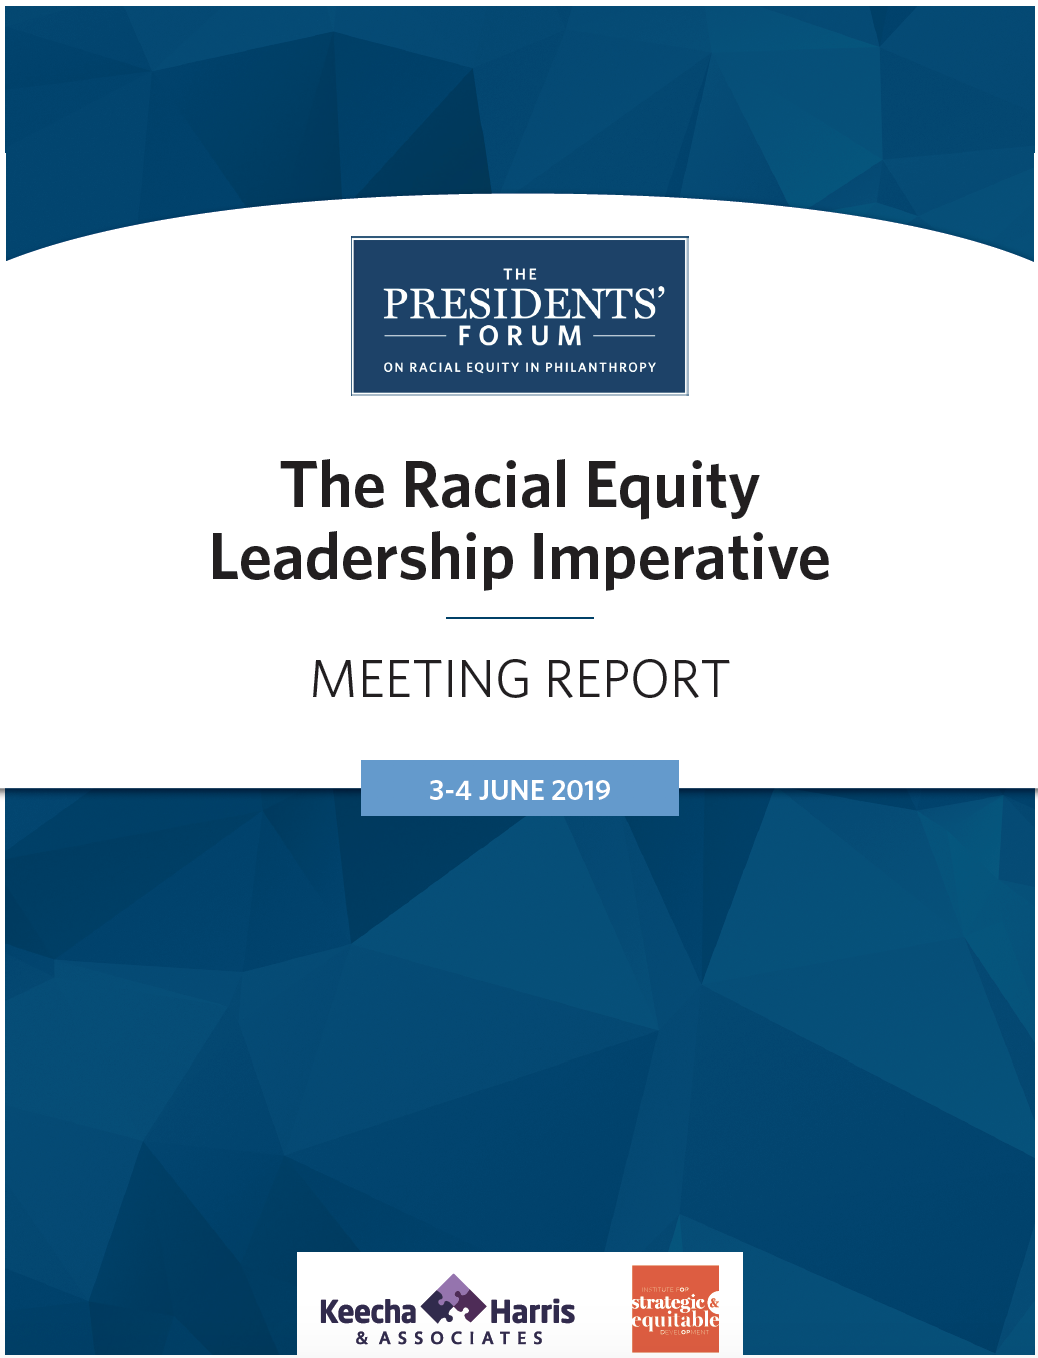 Click the image above to view and download the June 2019 Presidents' Forum Meeting Report.